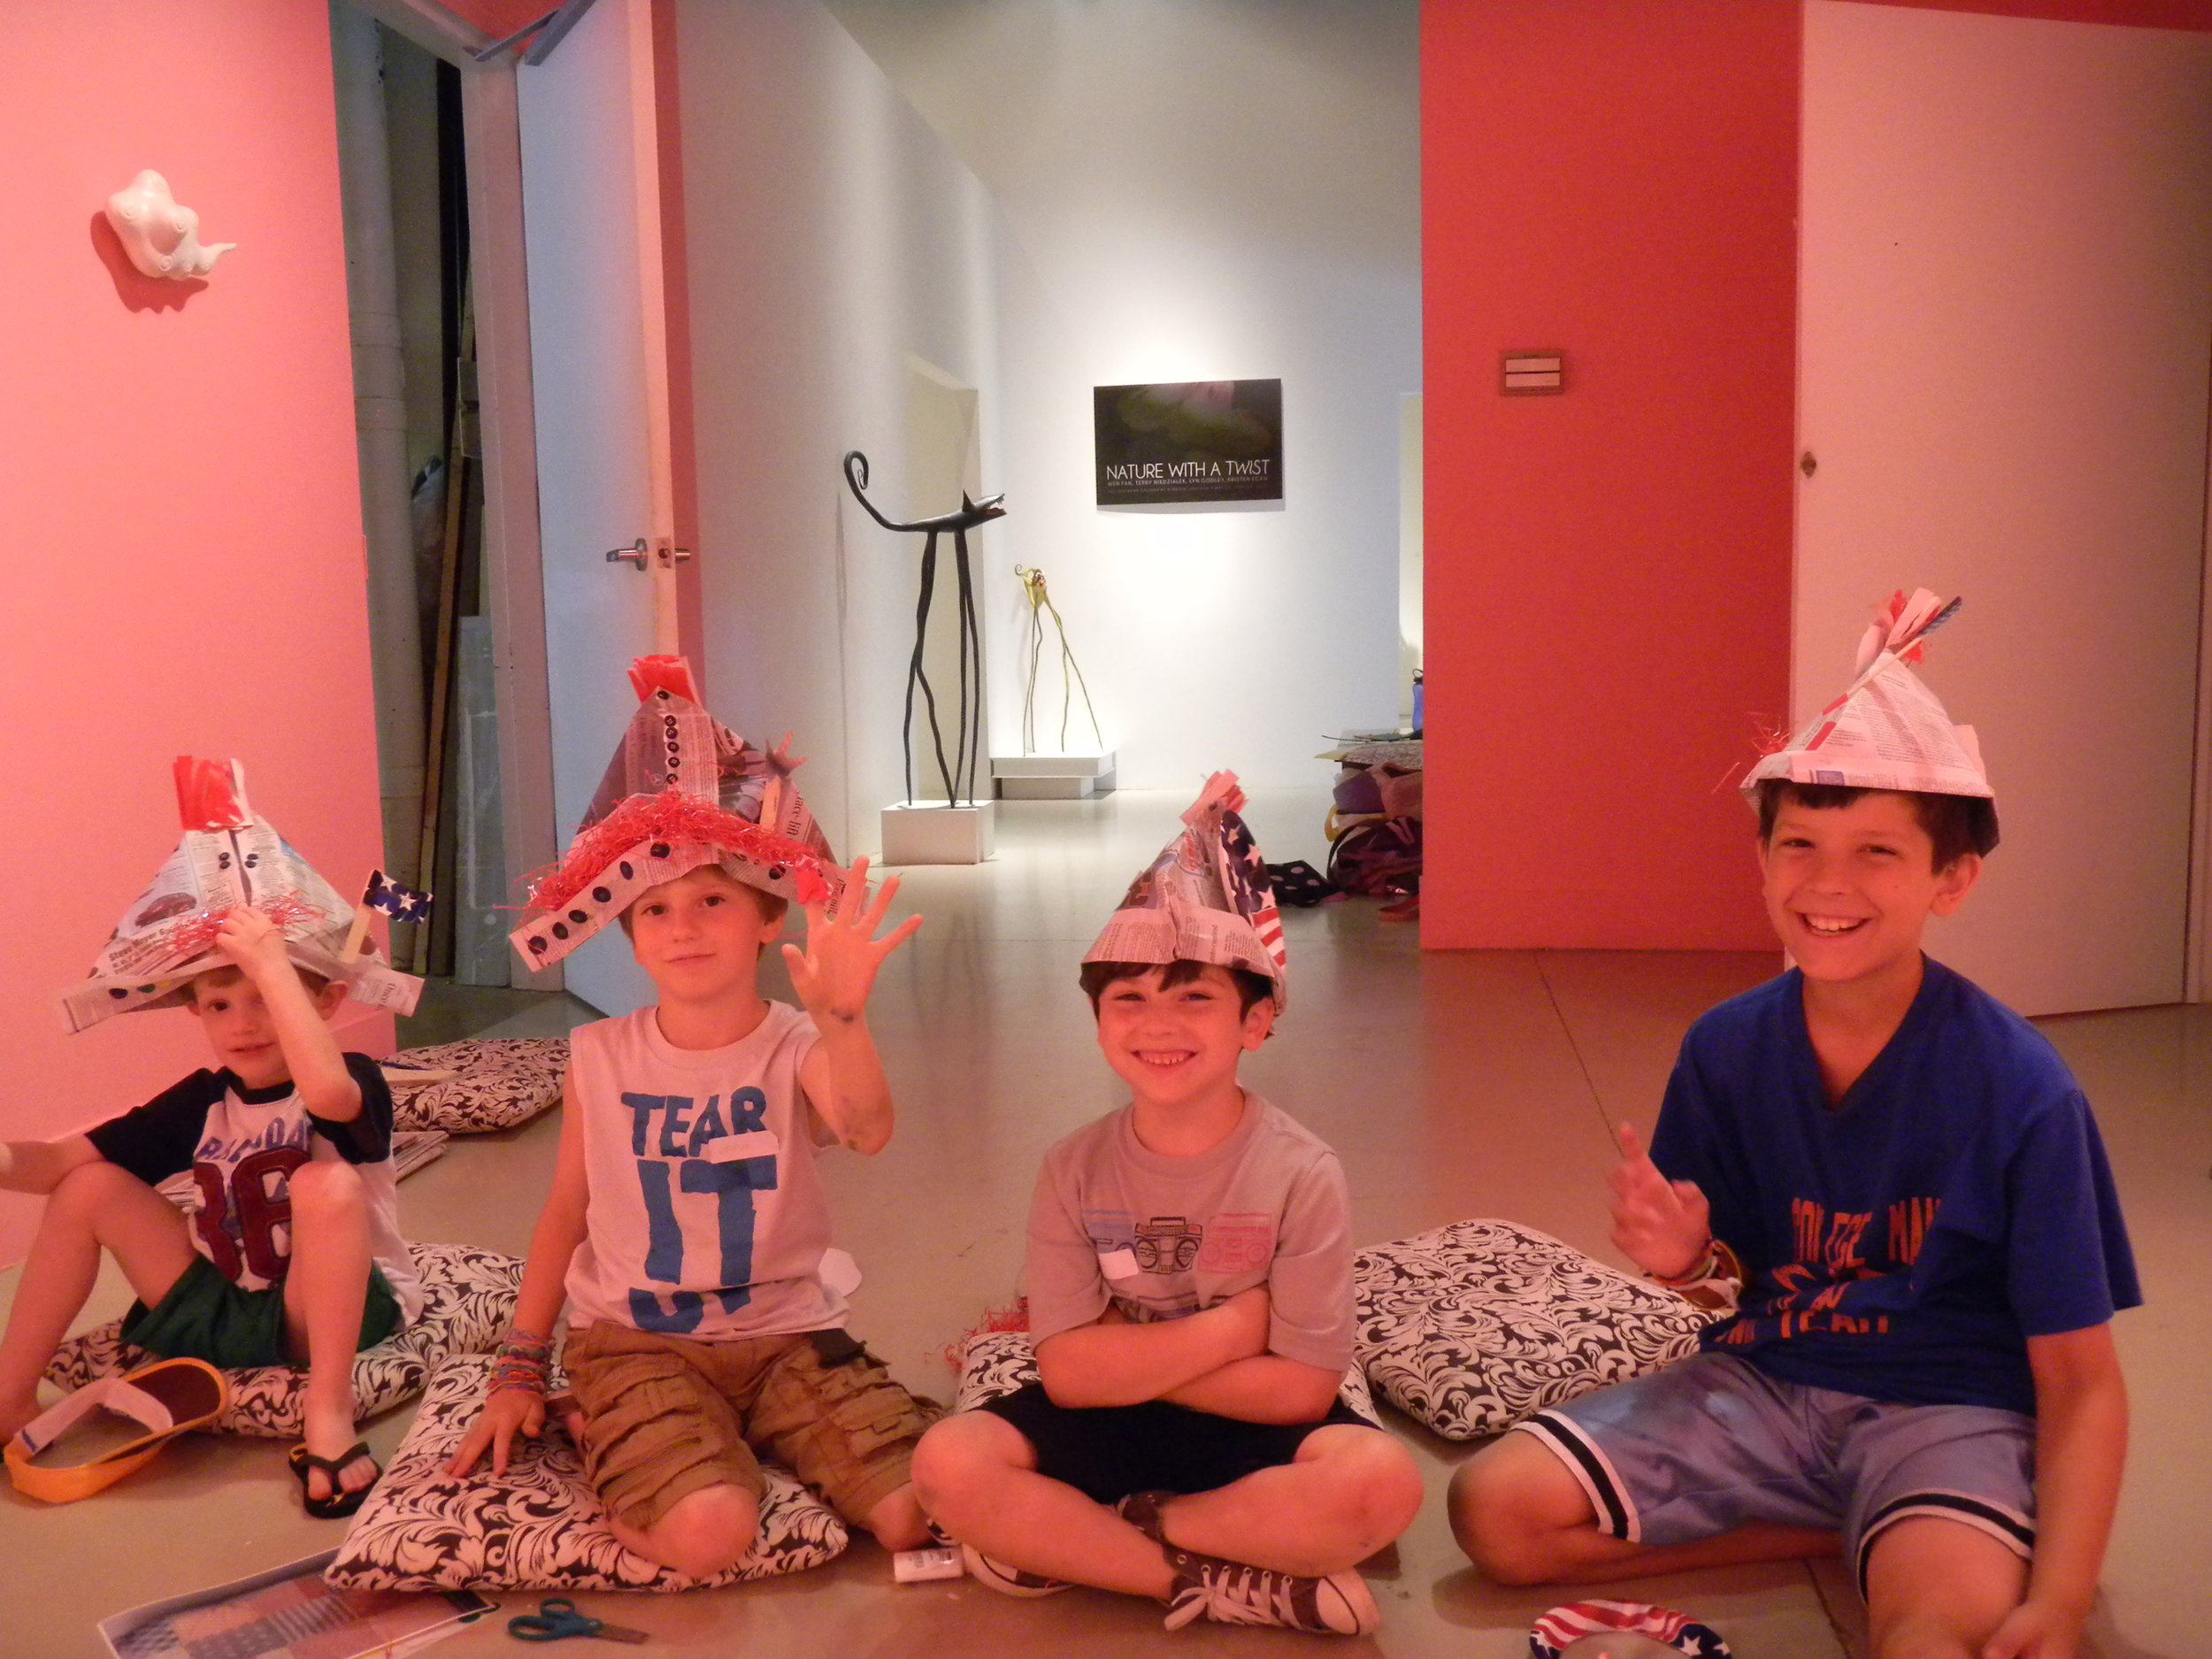 Kids with hand made personality hats